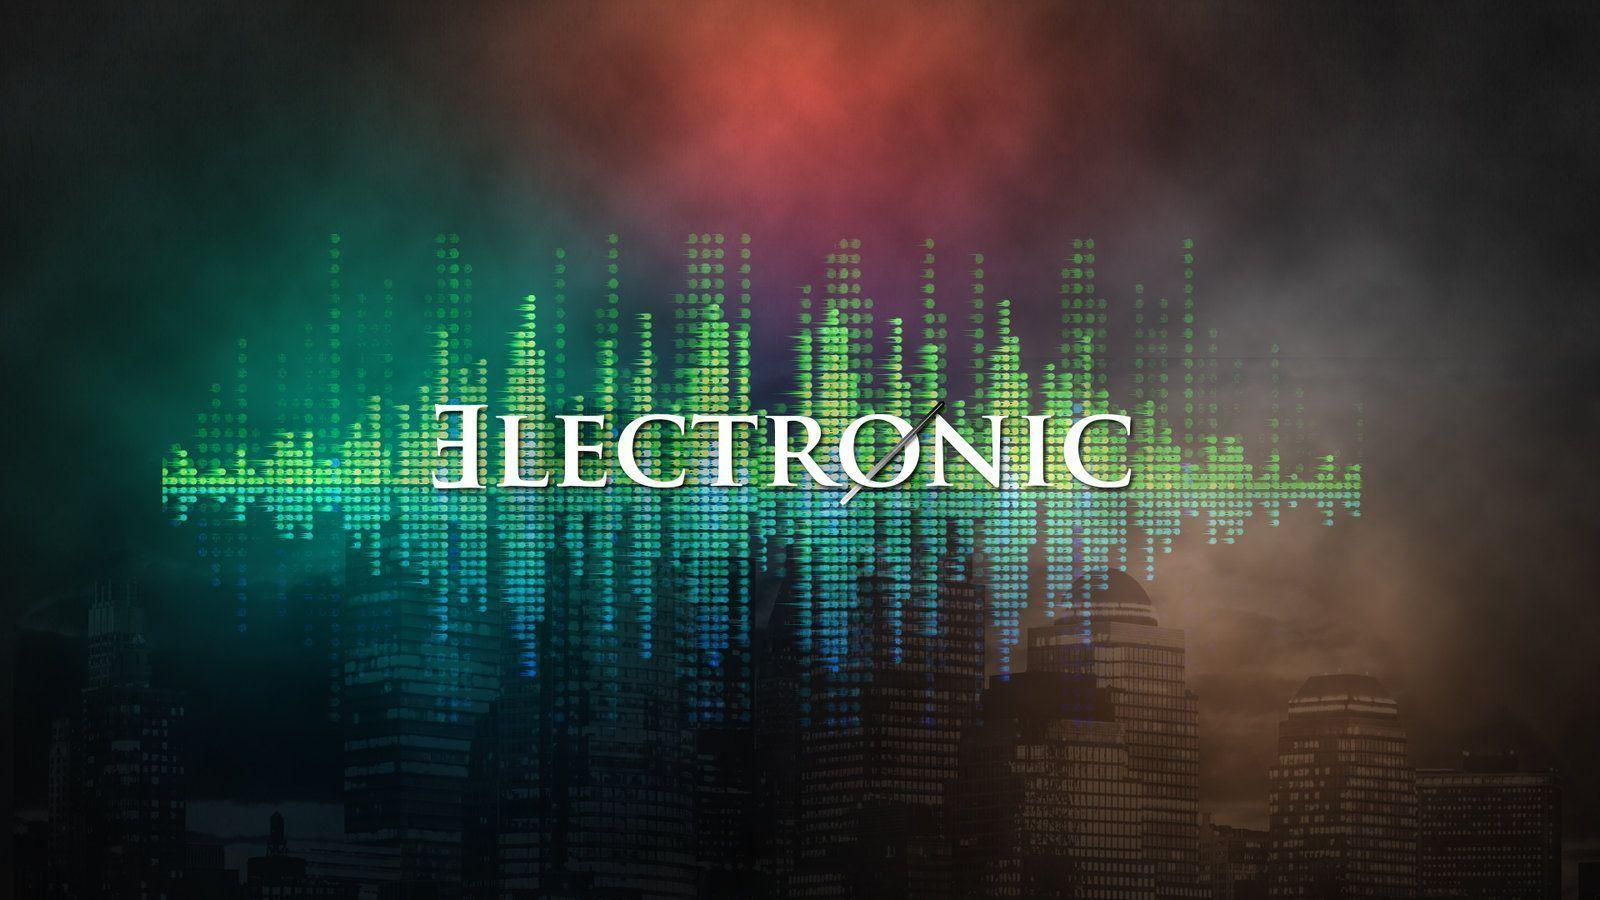 Wallpapers For > Electronic Music Art Wallpaper